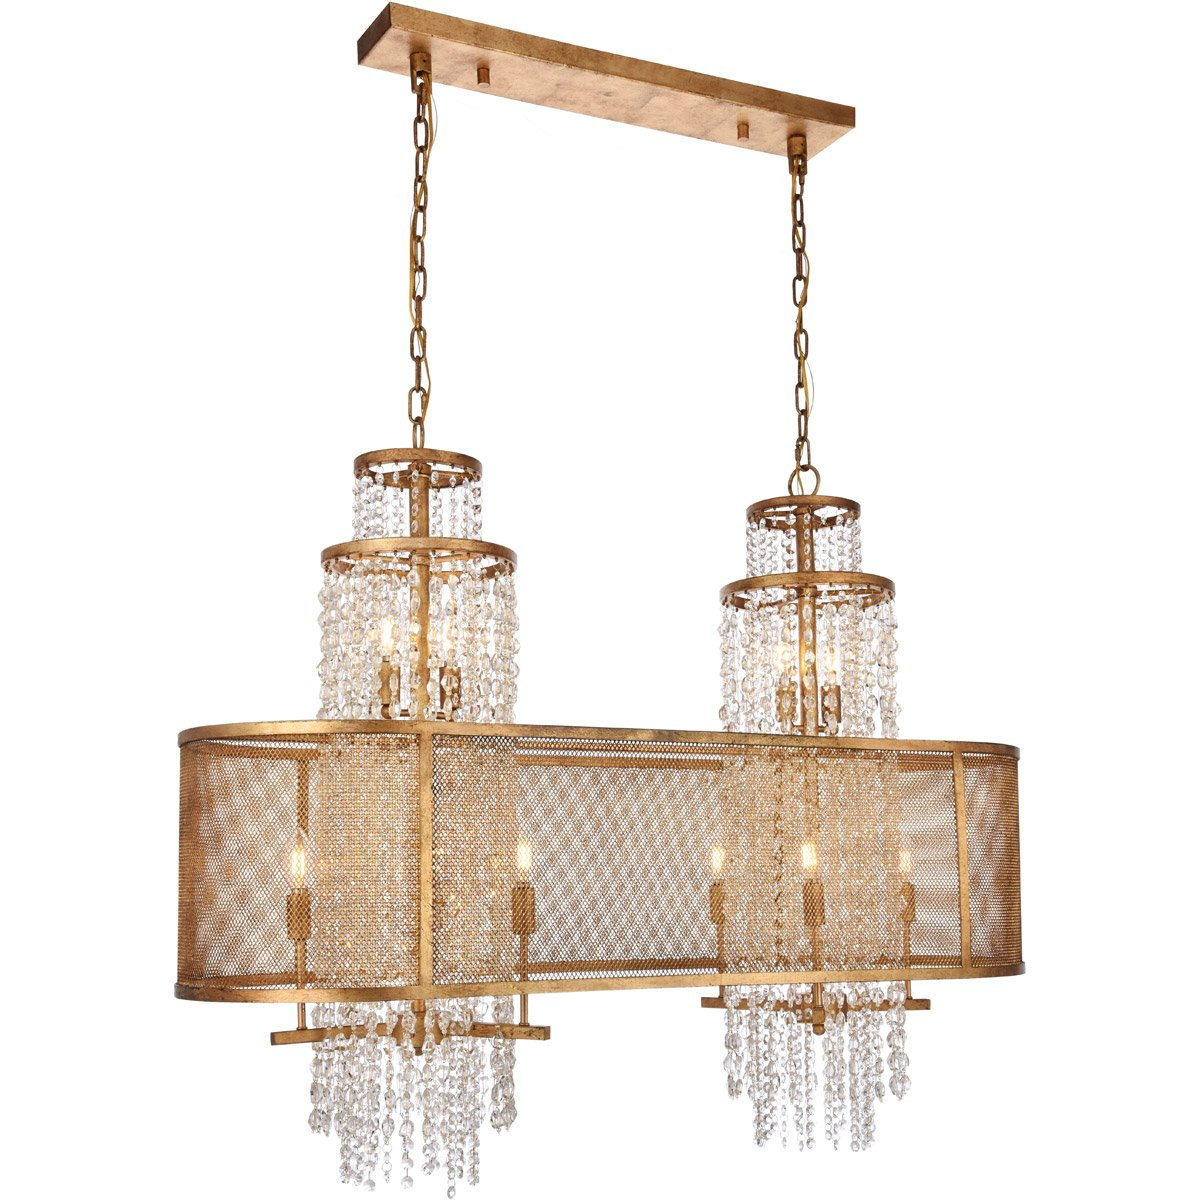 Legacy 16 X 45 Pendant Chandelier With 10 Lights - Golden Iron Finish Chandelier